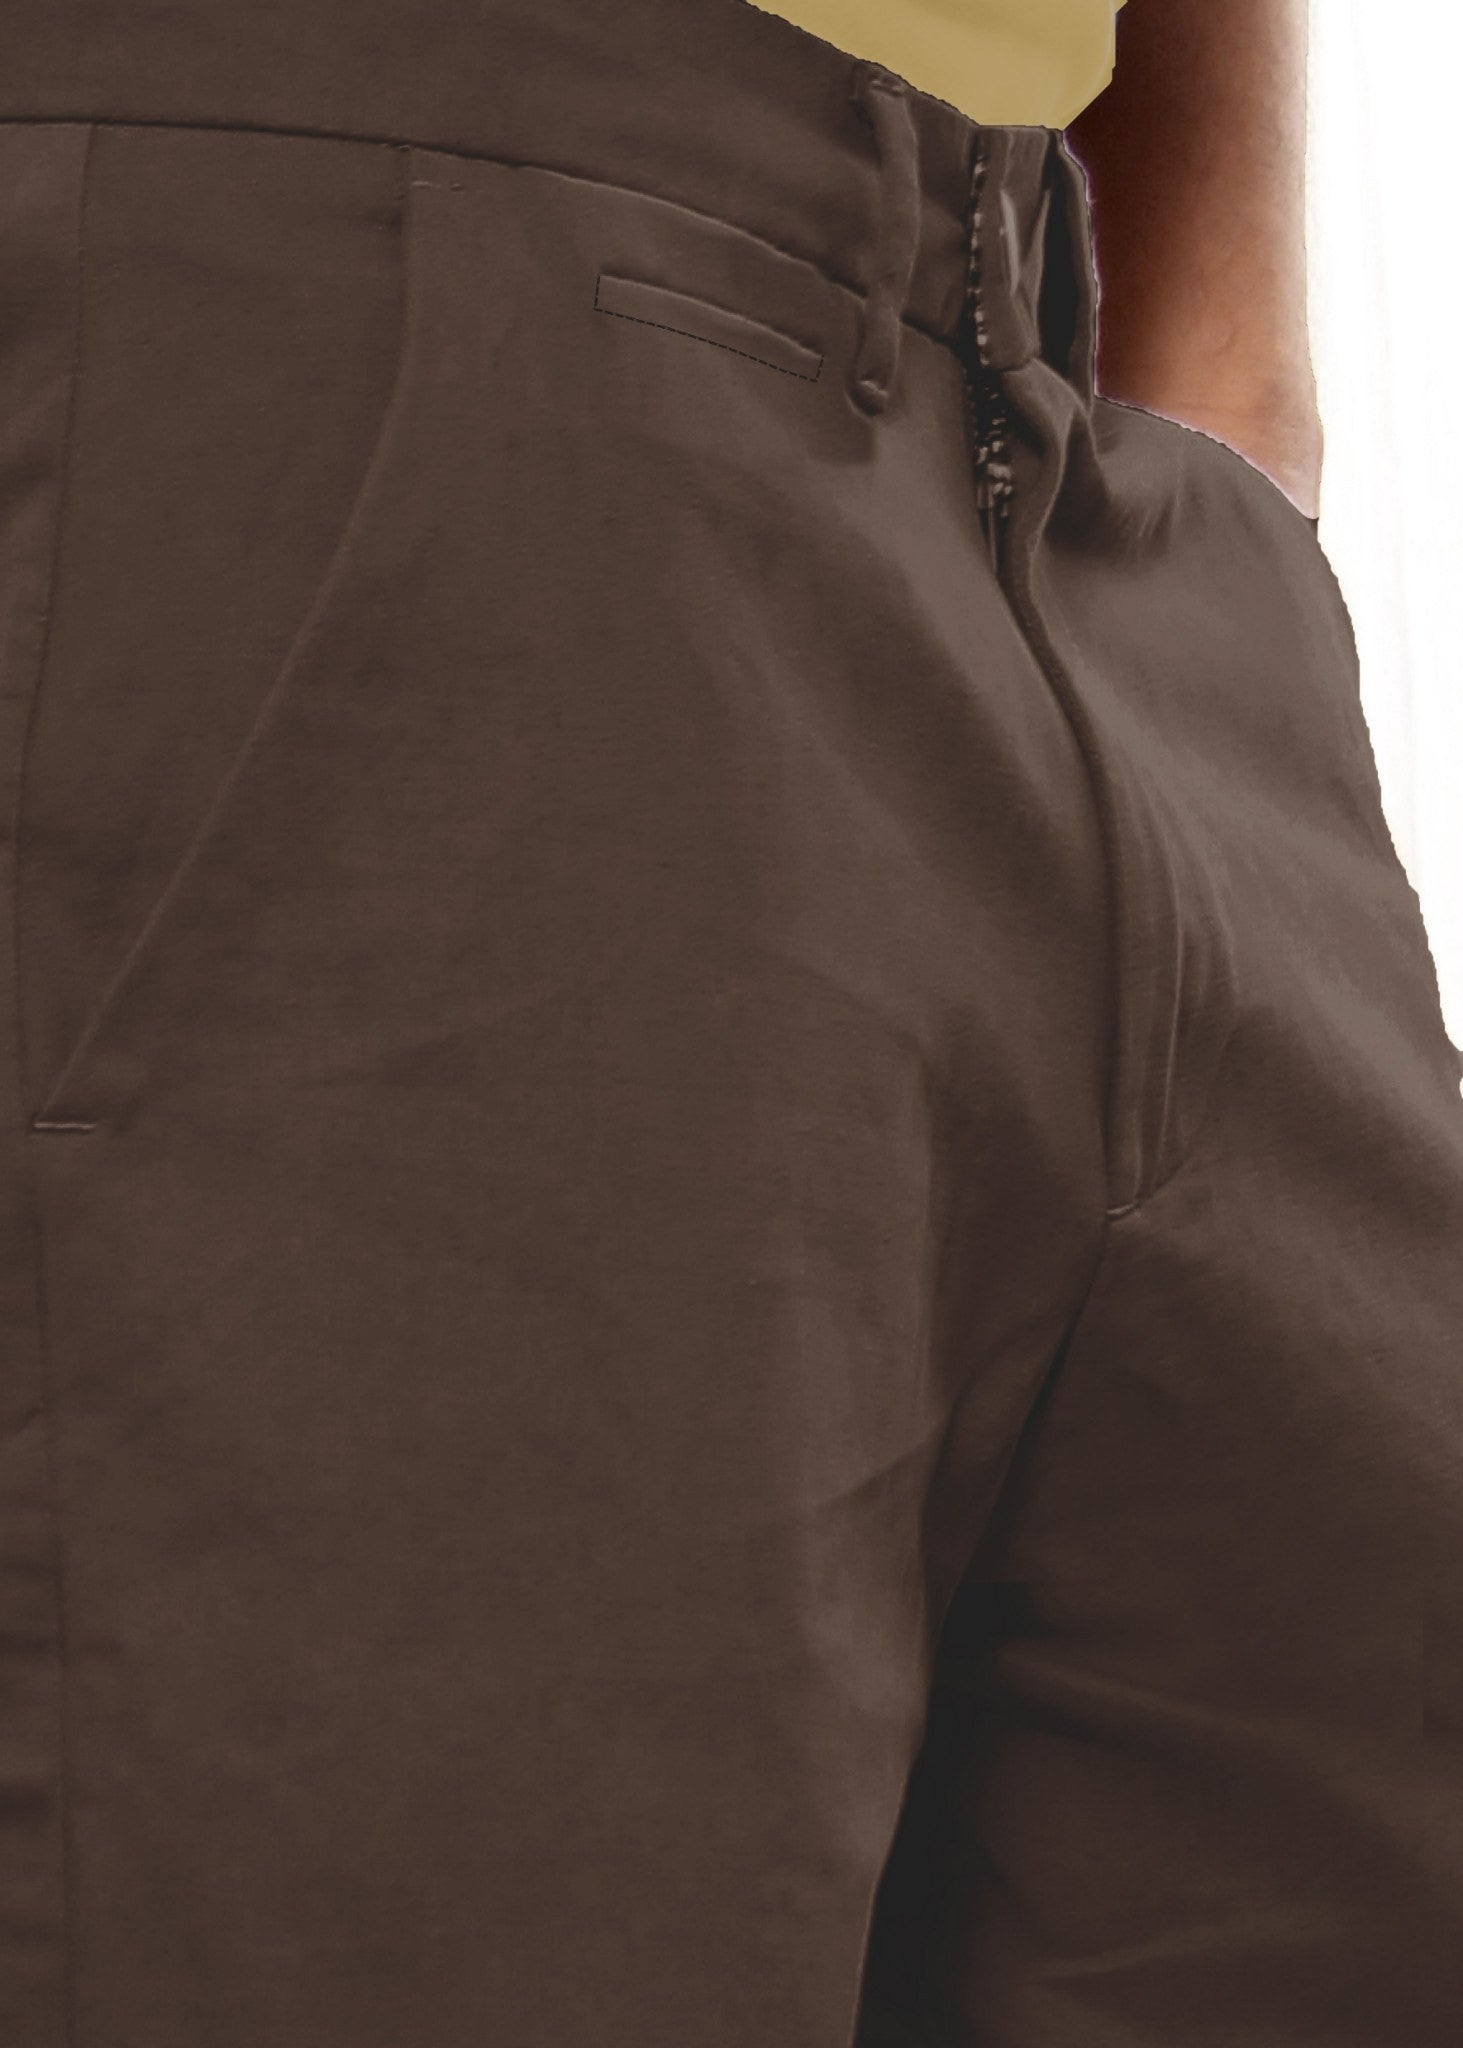 Uber Coffee Brown Meerut Shorts close up view